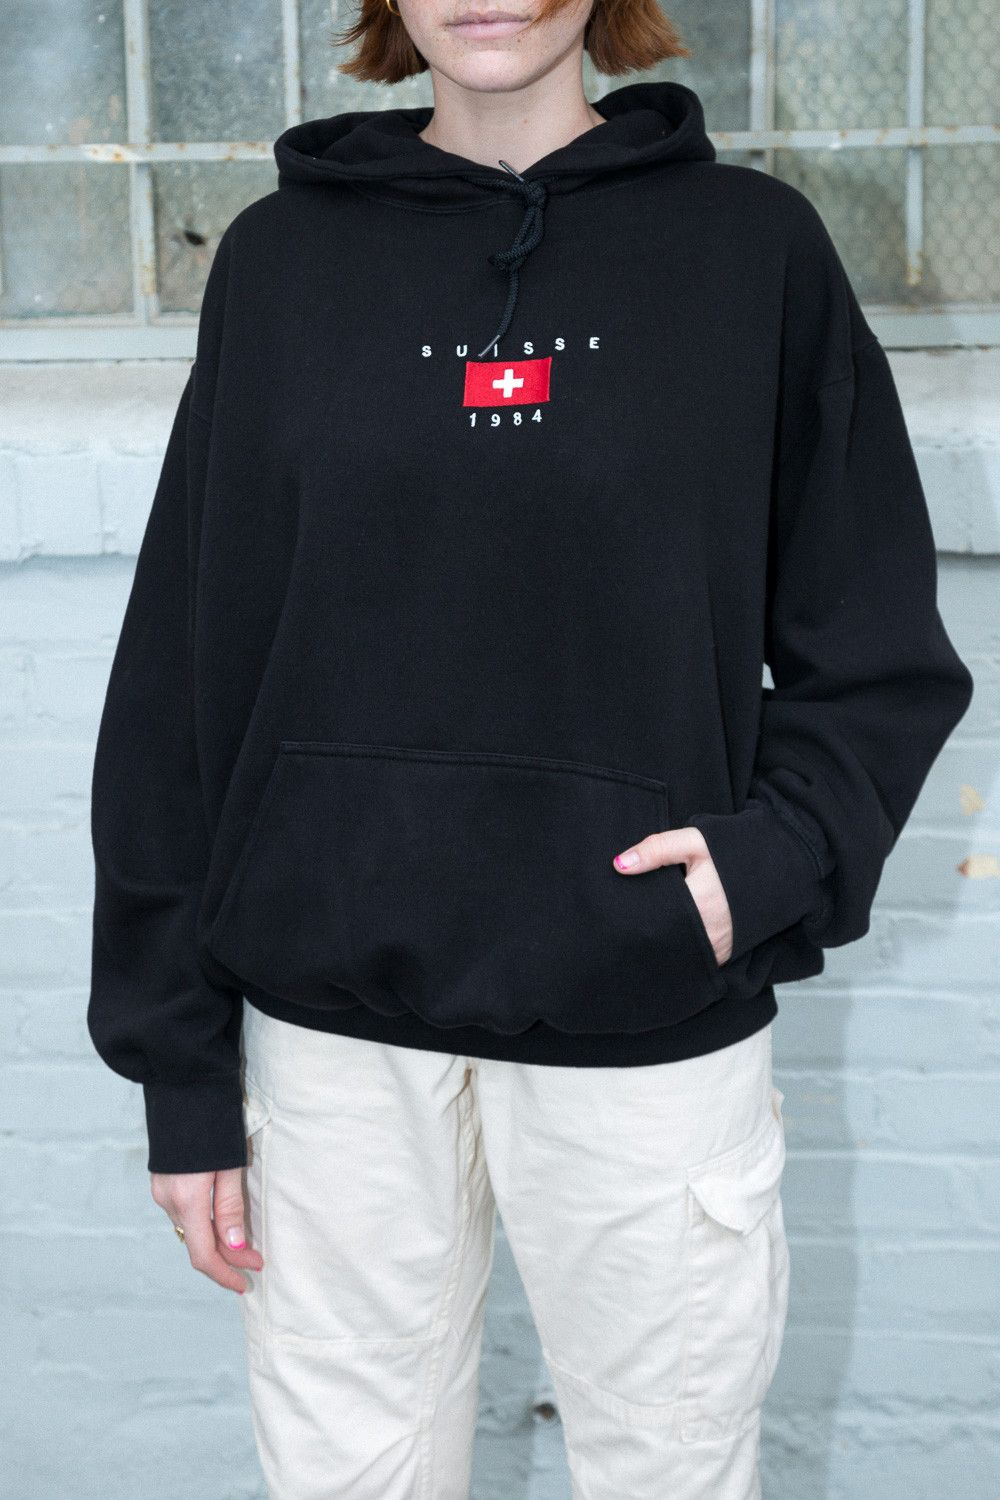 Christy Suisse 1984 Hoodie | Hoodies, Brandy melville